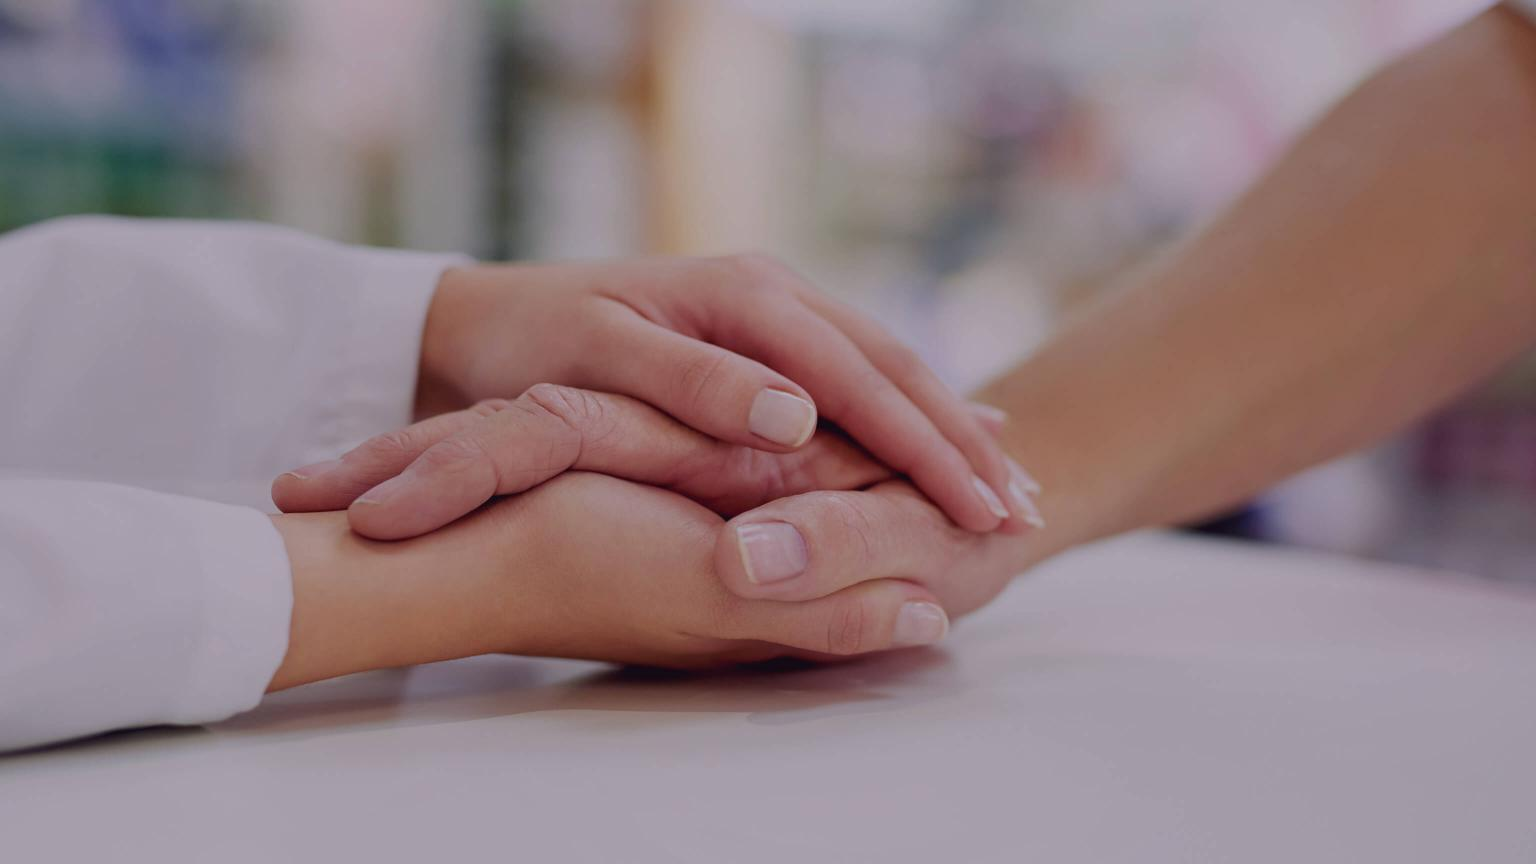 Two hands embracing across a desk